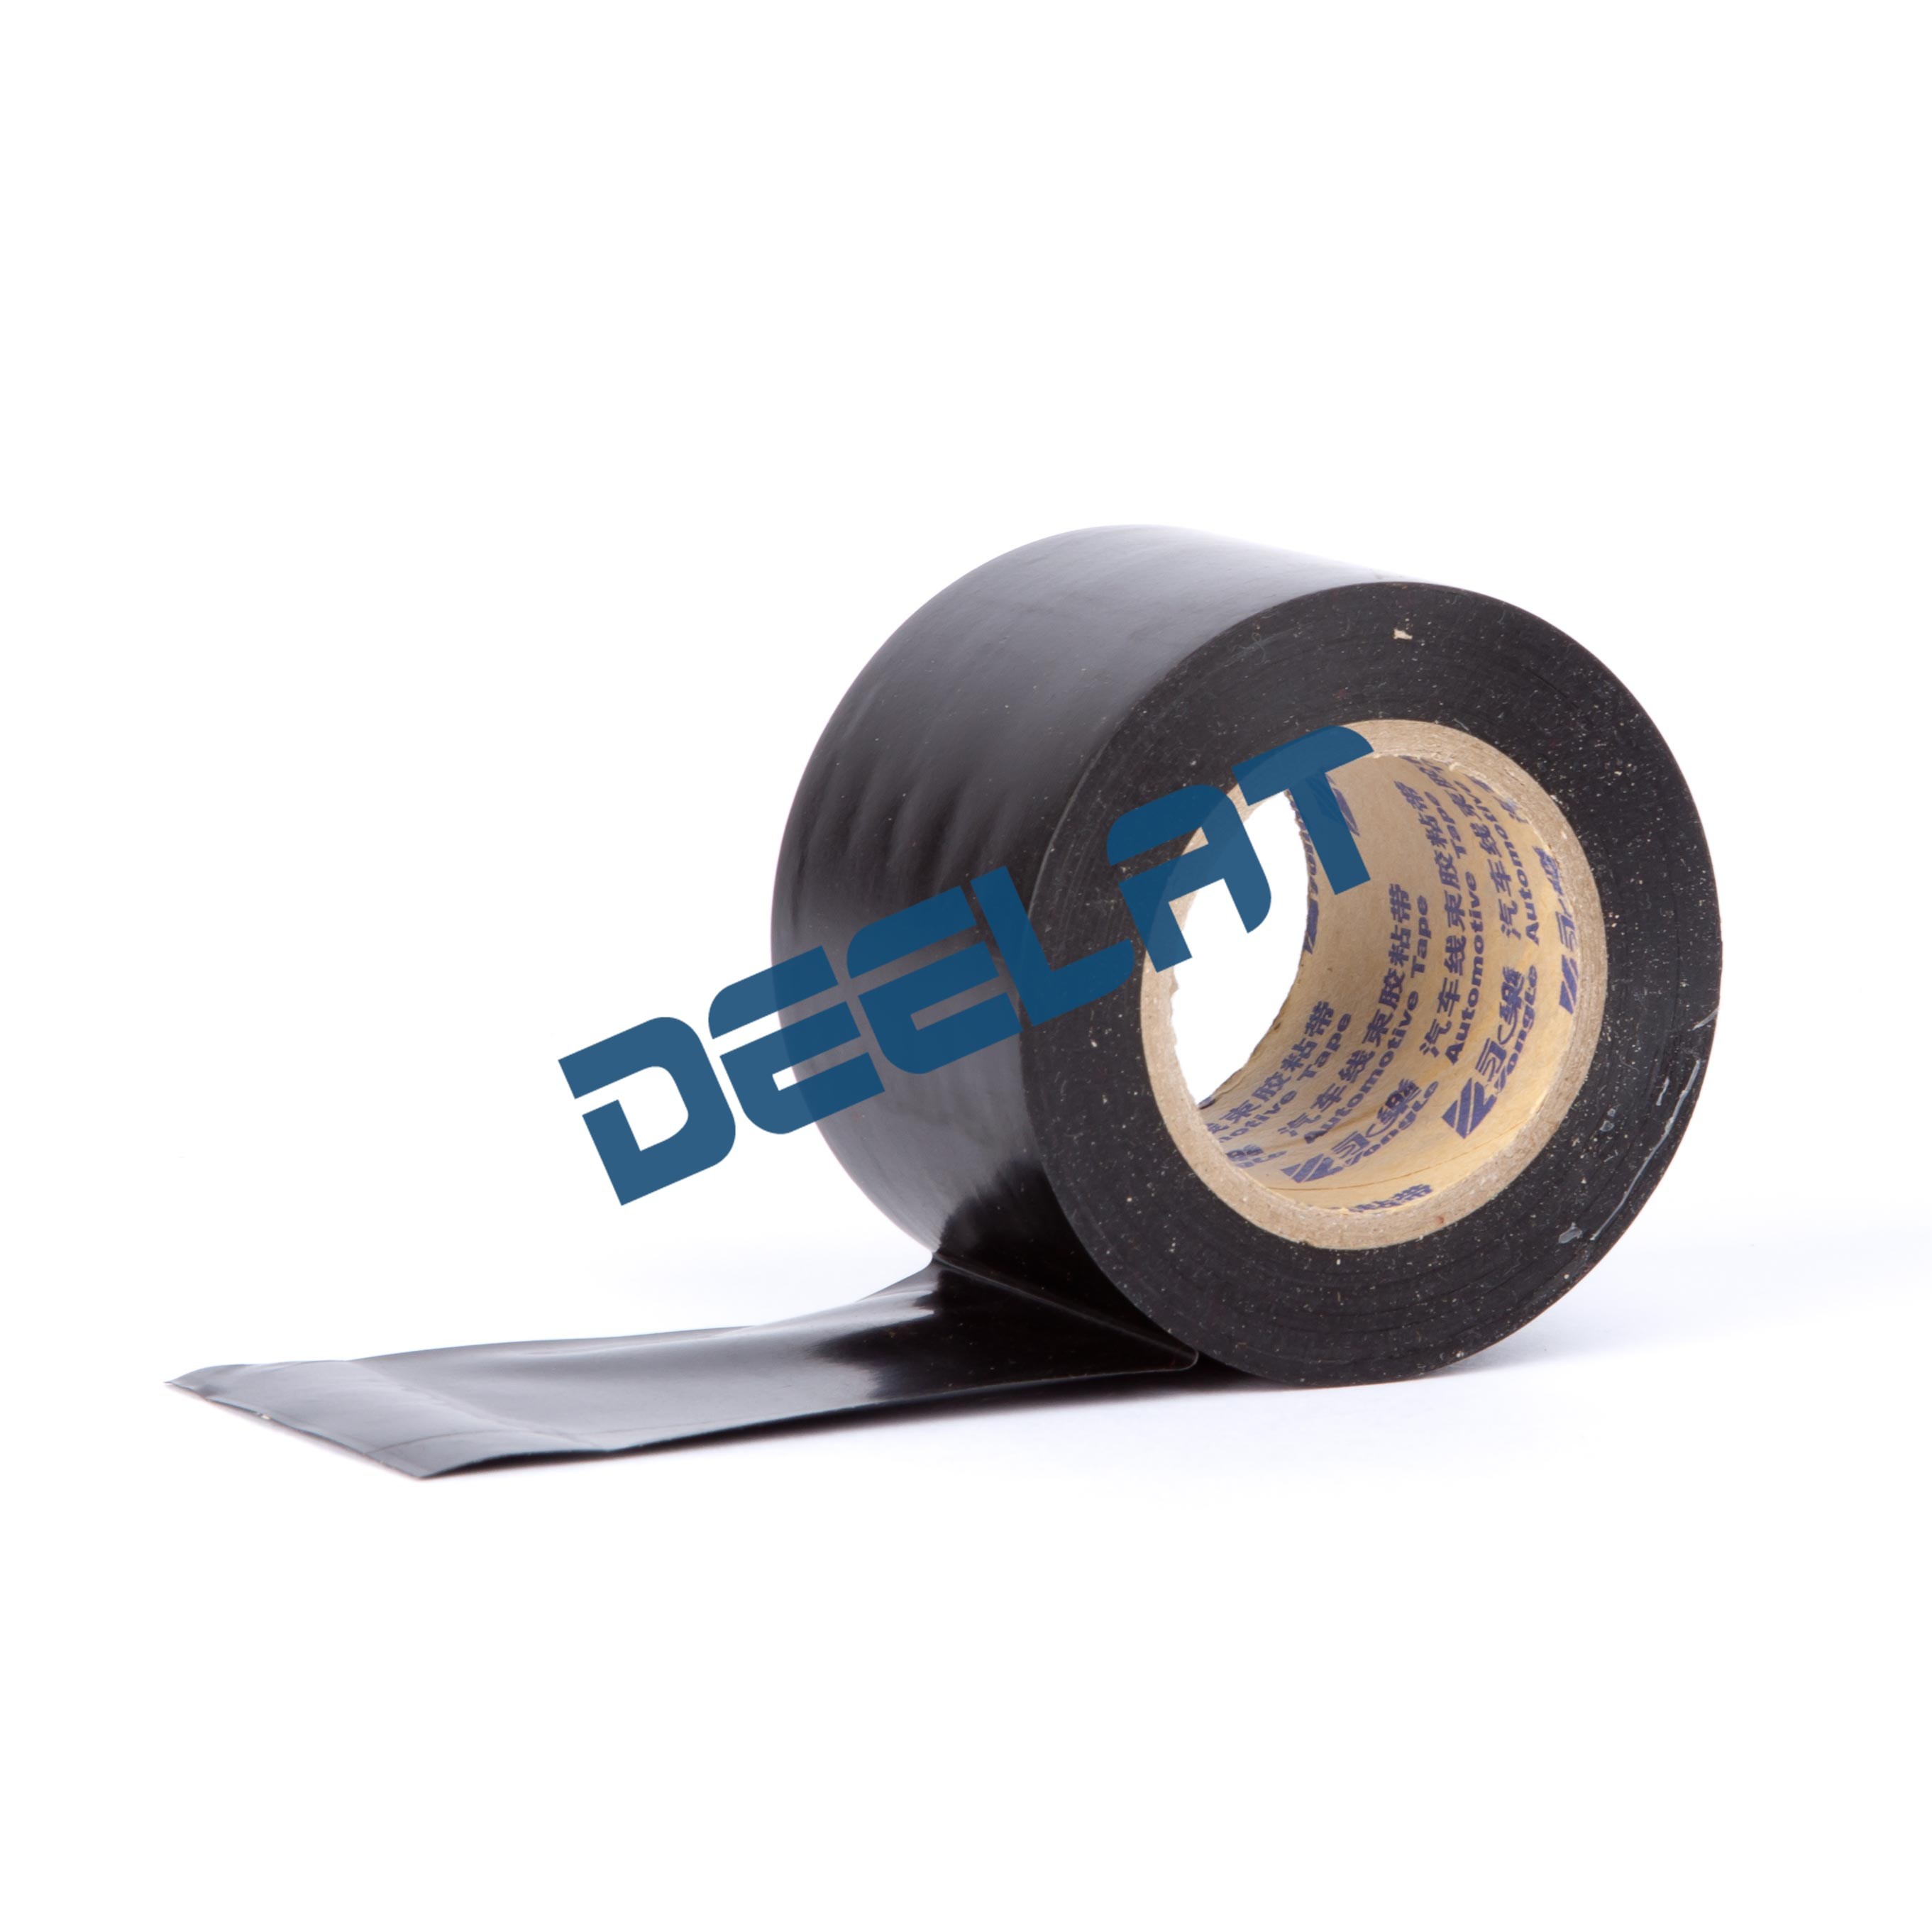 Auto IWre Harness Tape deelat blog automotive wire harness tape uses, types and auto wire harness tape at panicattacktreatment.co